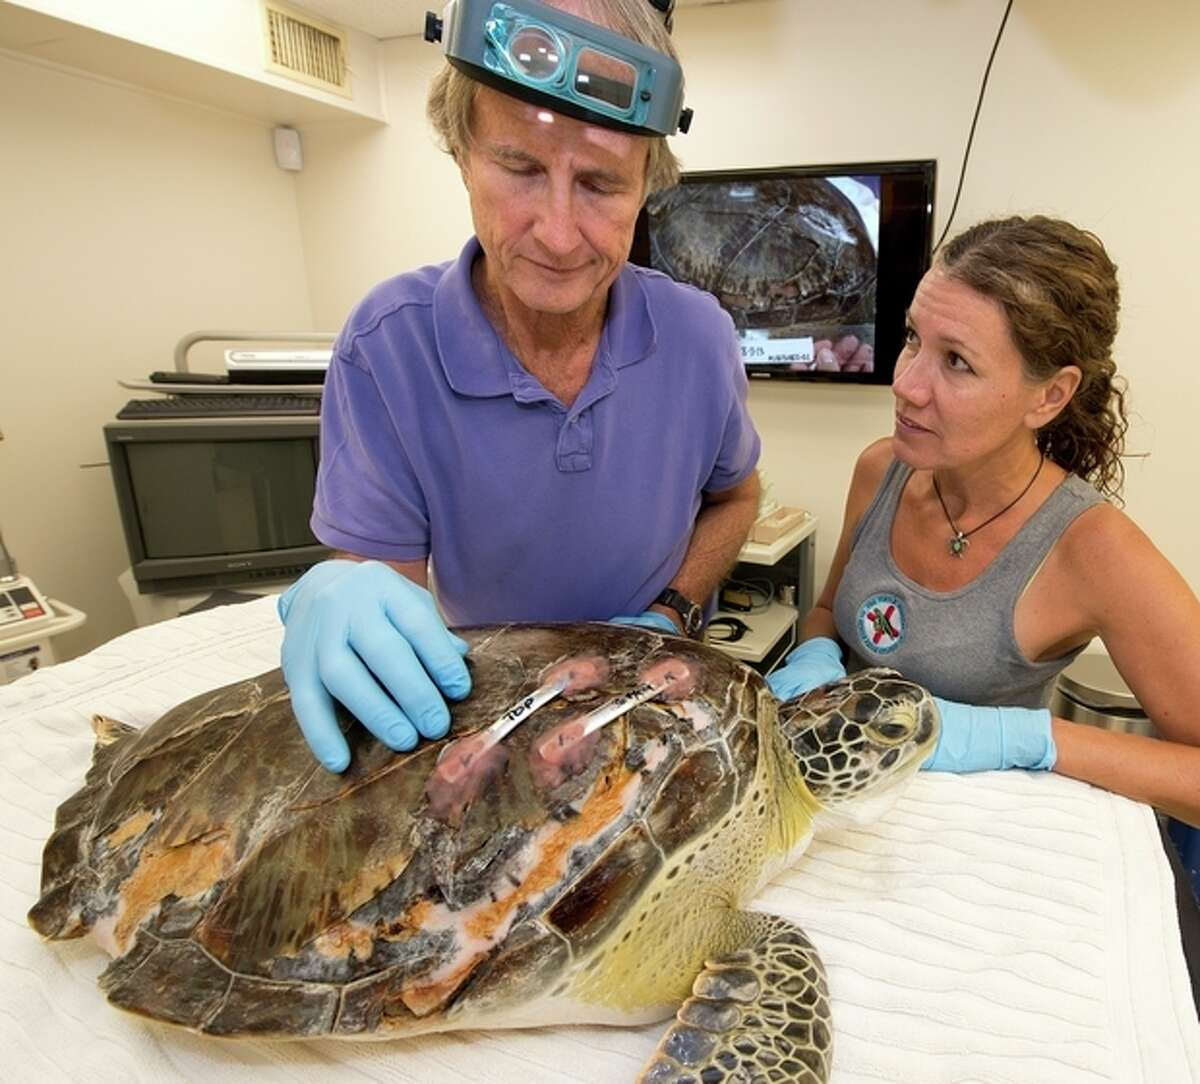 In this photo provided by the Florida Keys News Bureau, Florida Keys dentist Fred Troxel, left, examines repairs he made to the fractured shell of Elena, an endangered green sea turtle, at the Turtle Hospital Thursday, Sept. 12, 2013, in Marathon, Fla. At right is Bette Zirkelbach, the hospital's manager. On Wednesday, Sept. 11, Troxel utilized a denture repair adhesive to bond two metal orthopedic plates across a 10-inch split on the turtle?'s carapace. (AP Photo/Florida Keys News Bureau, Andy Newman)